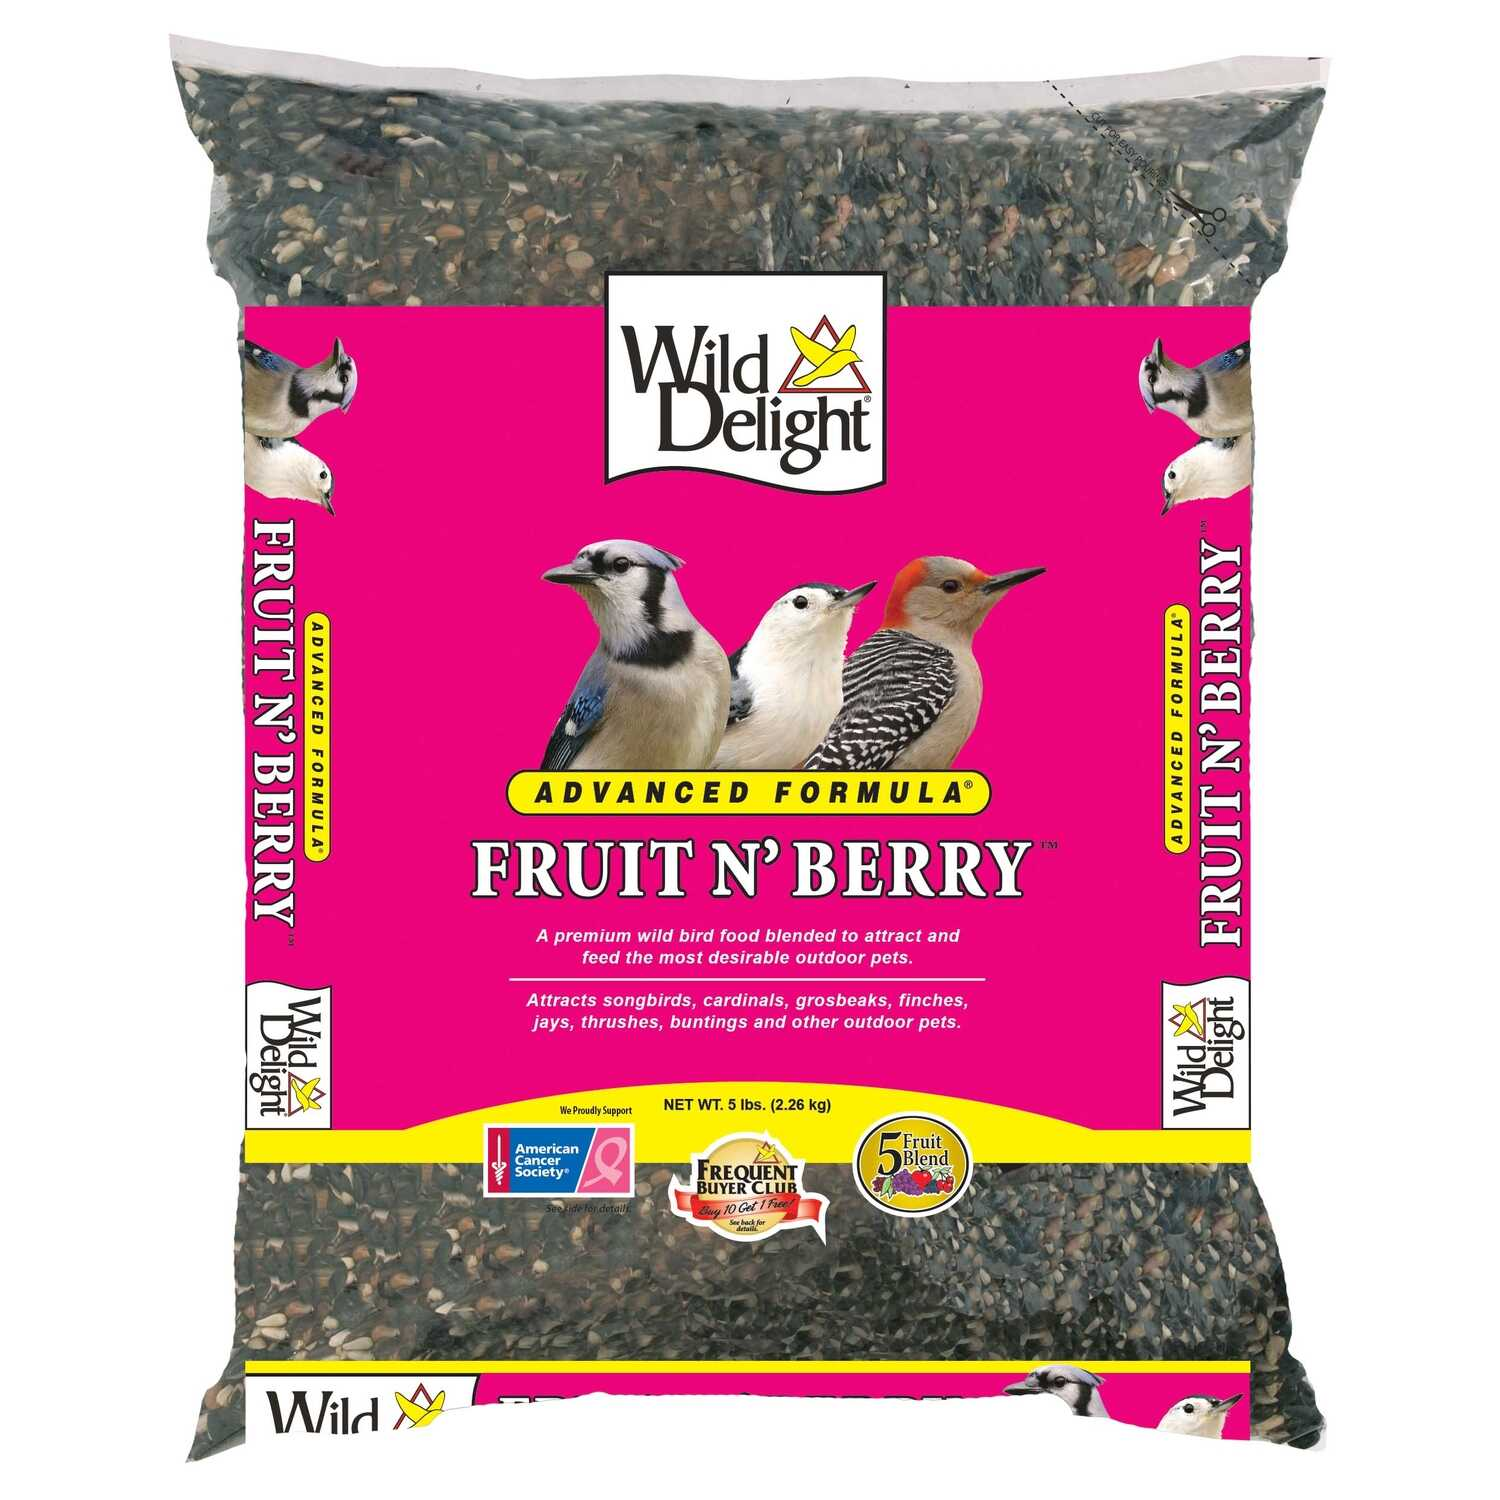 Wild Delight  Fruit N Berry  Assorted Species  Wild Bird Food  Sunflower Seeds  5 lb.